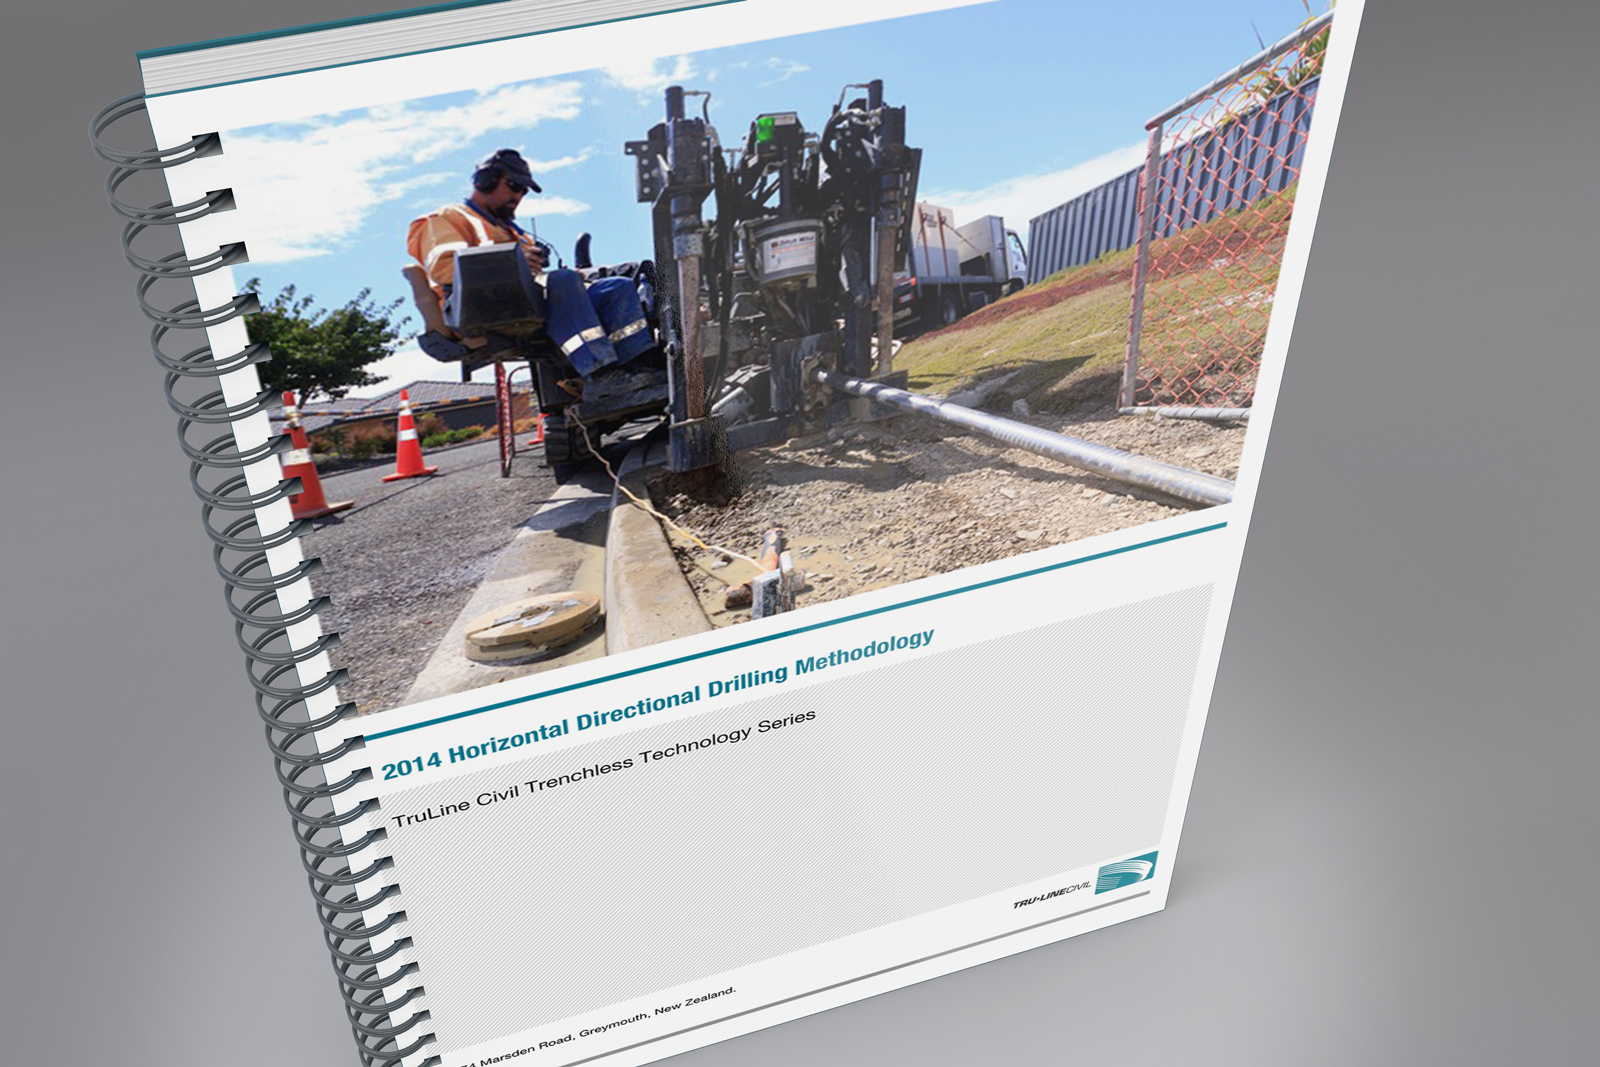 TruLine Capabilities Profile document, Horizontal Directional Drilling Methodology front cover.